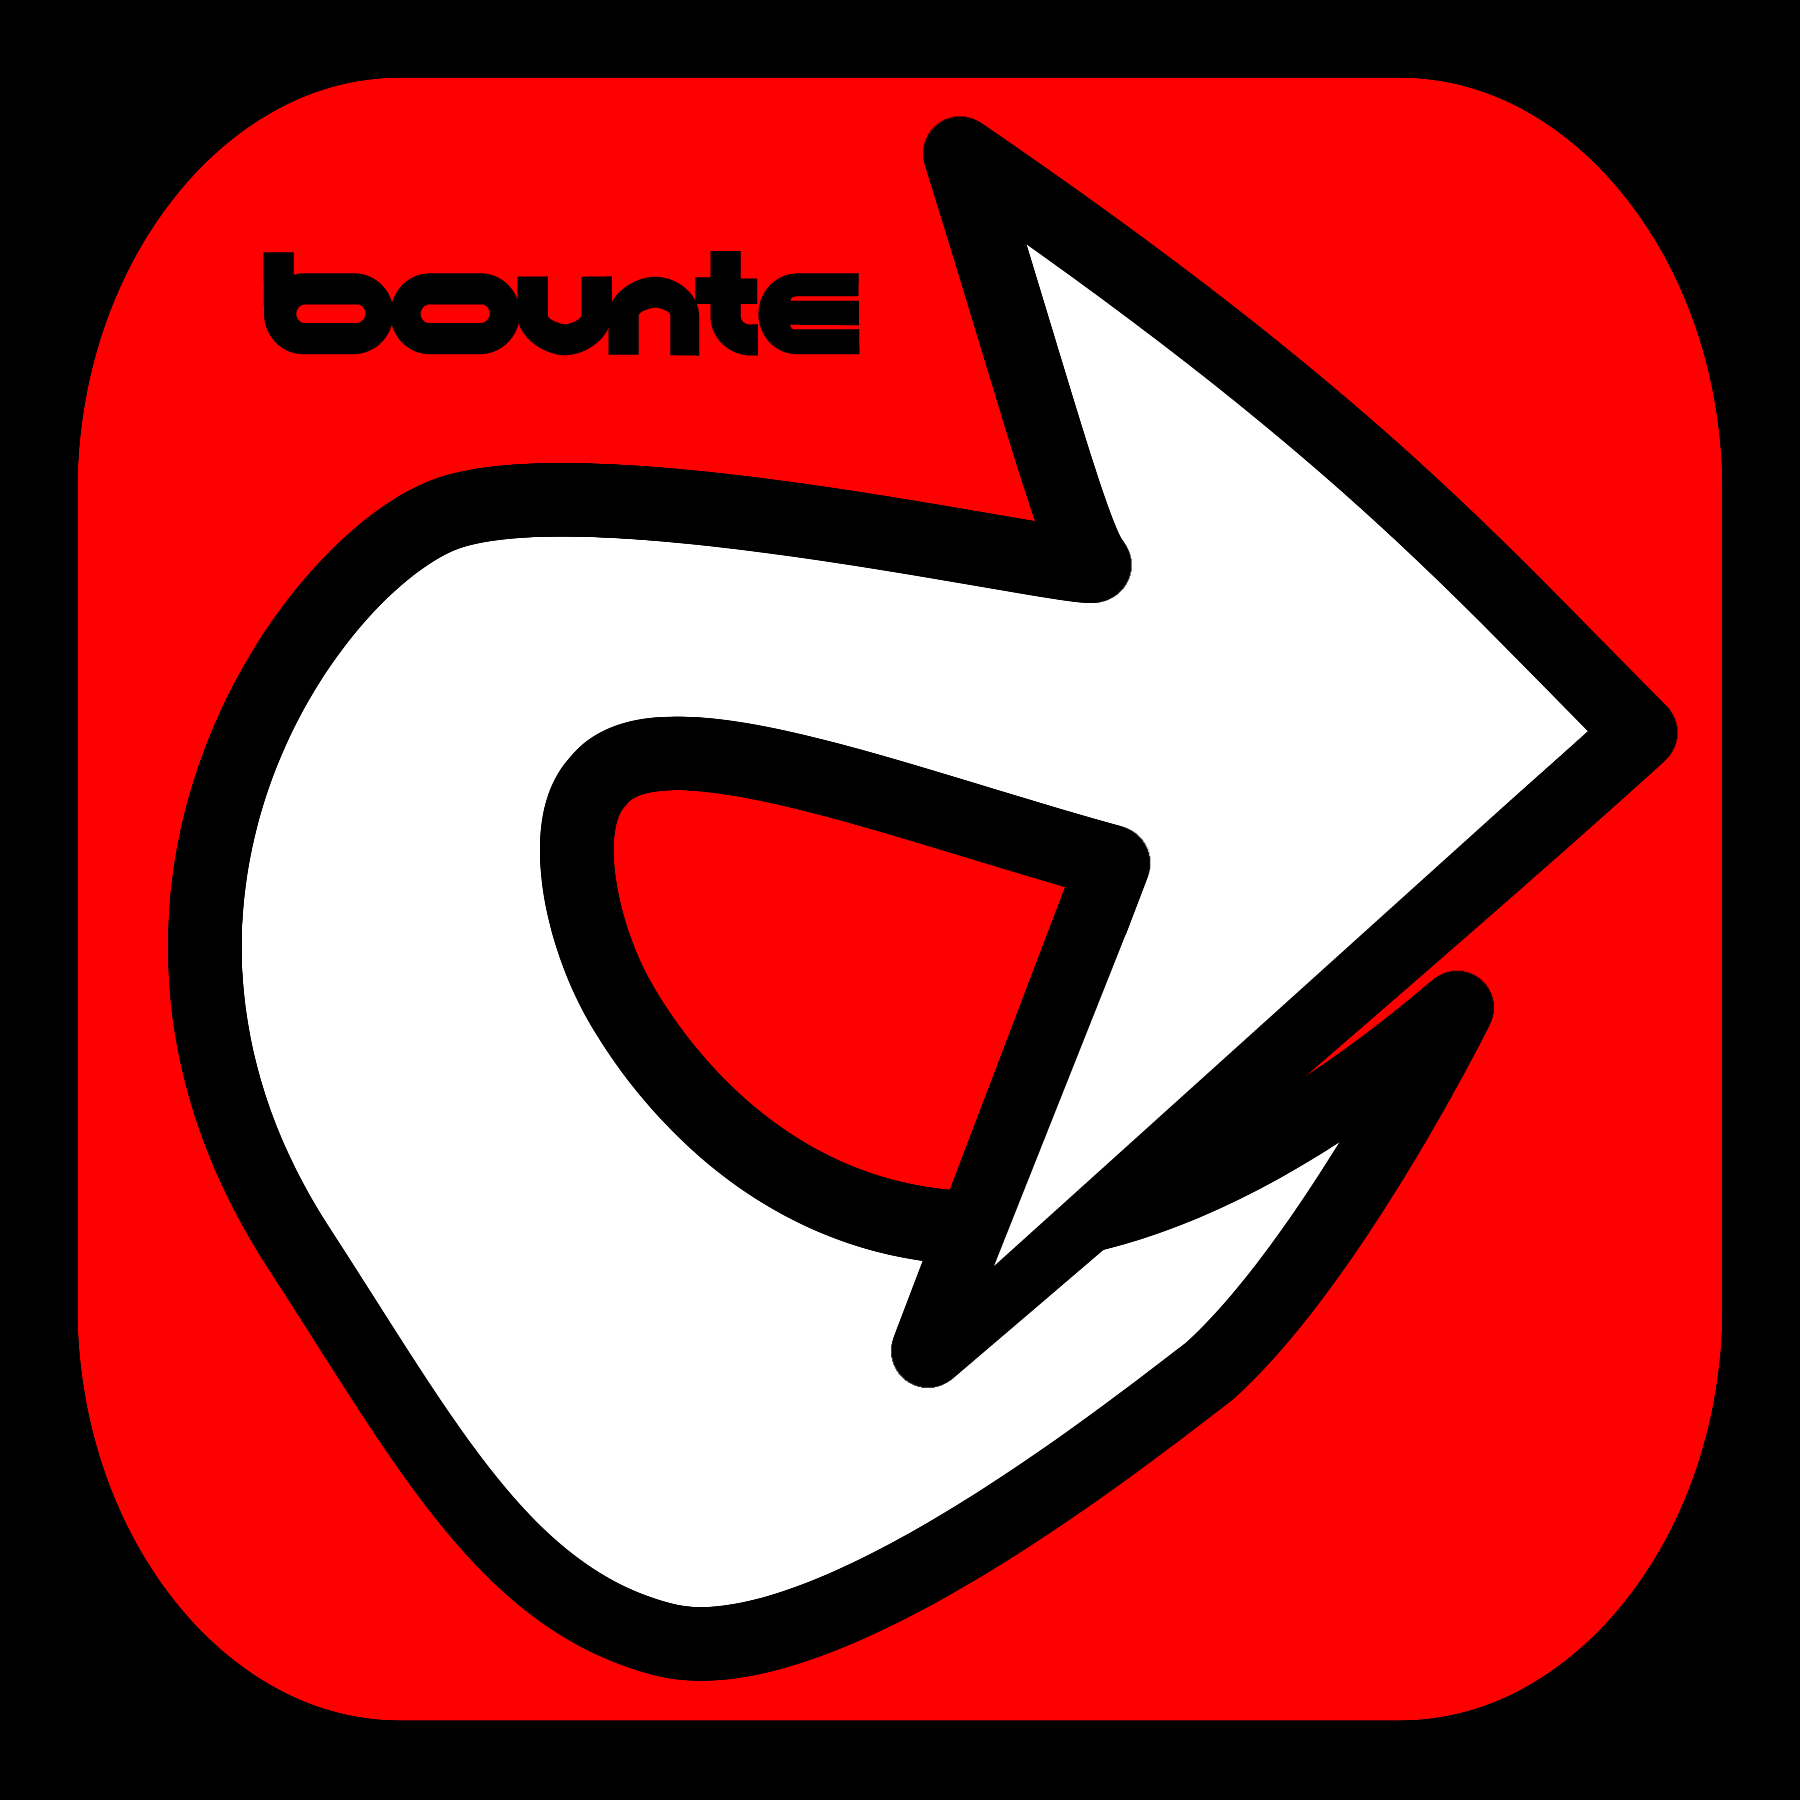 bounte sticker